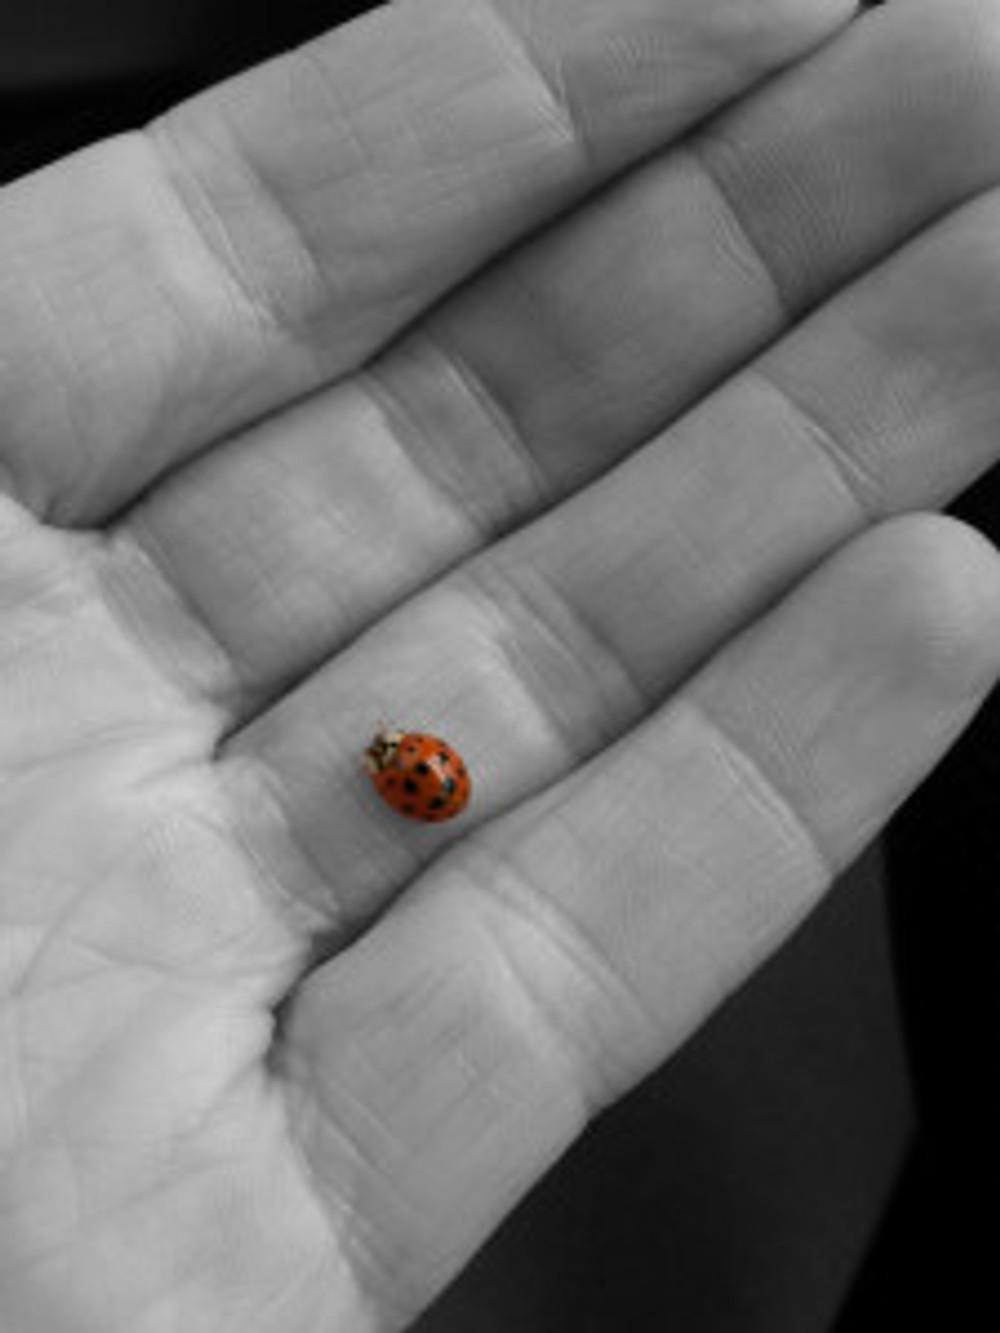 ladybug in hand bw red